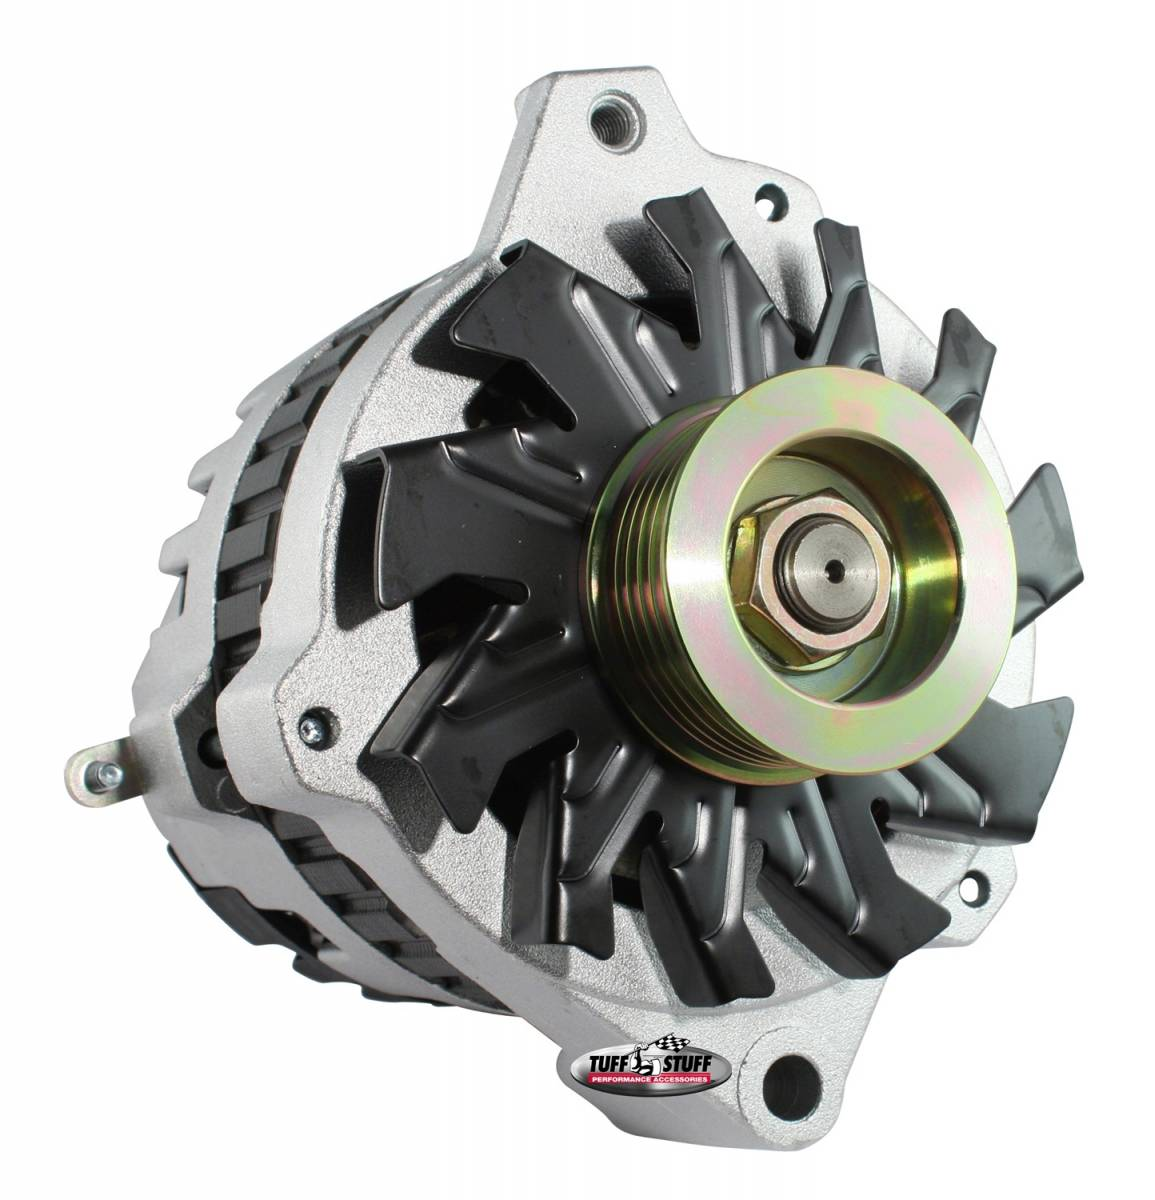 Tuff Stuff Performance - Alternator 105 AMP 1 Wire Or OEM 6 Groove Pulley 6.125 in. Bolt To Bolt Factory Cast PLUS+ 7866-16G